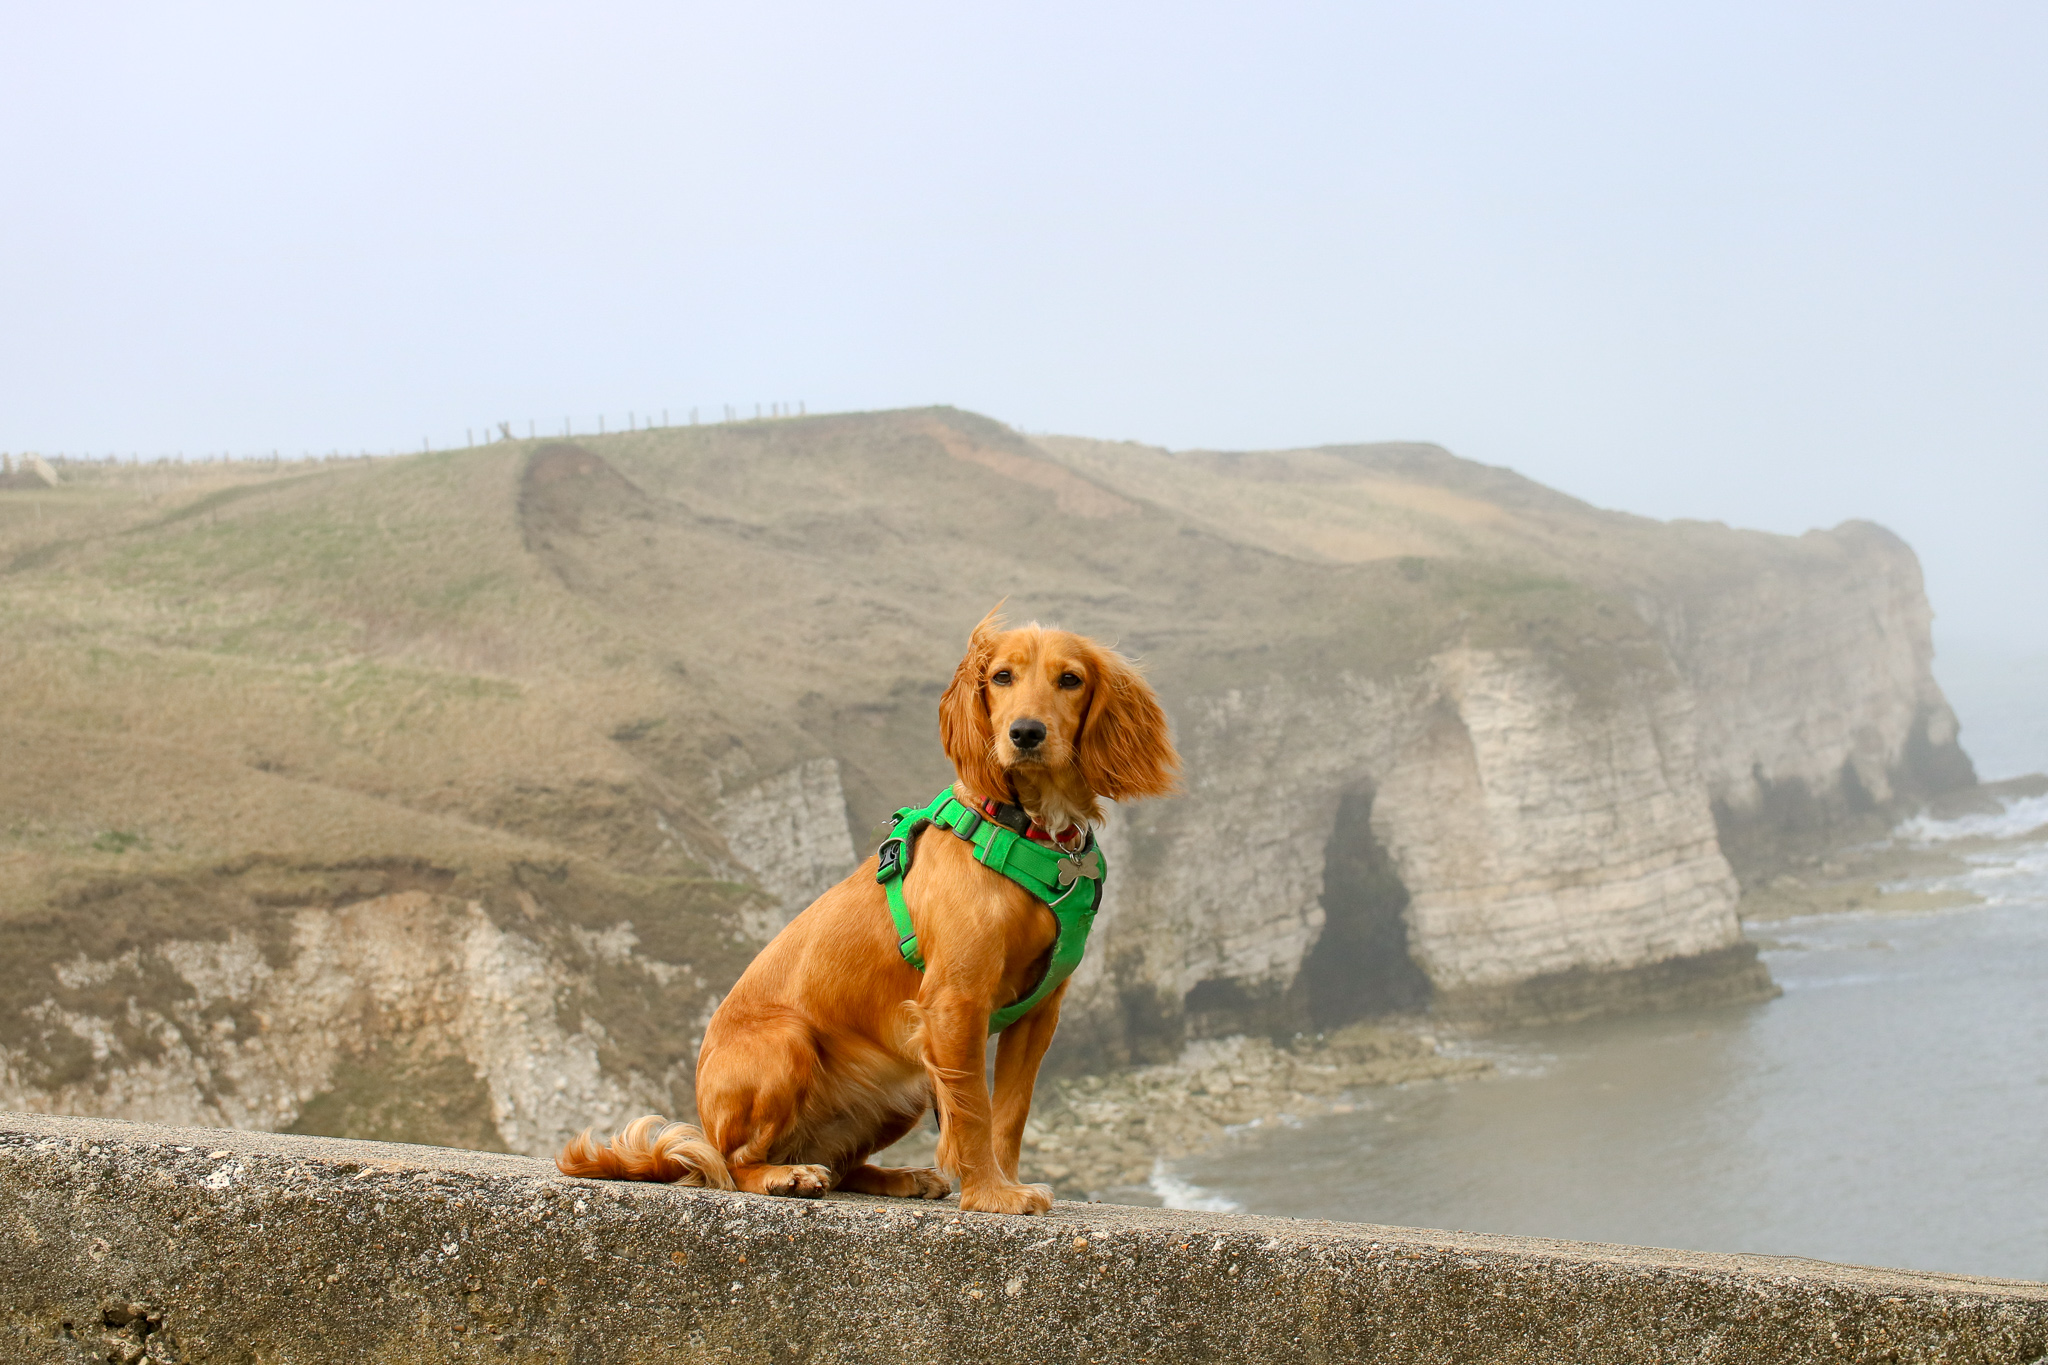 Dog Friendly East Yorkshire: Flamborough Head and Danes Dyke